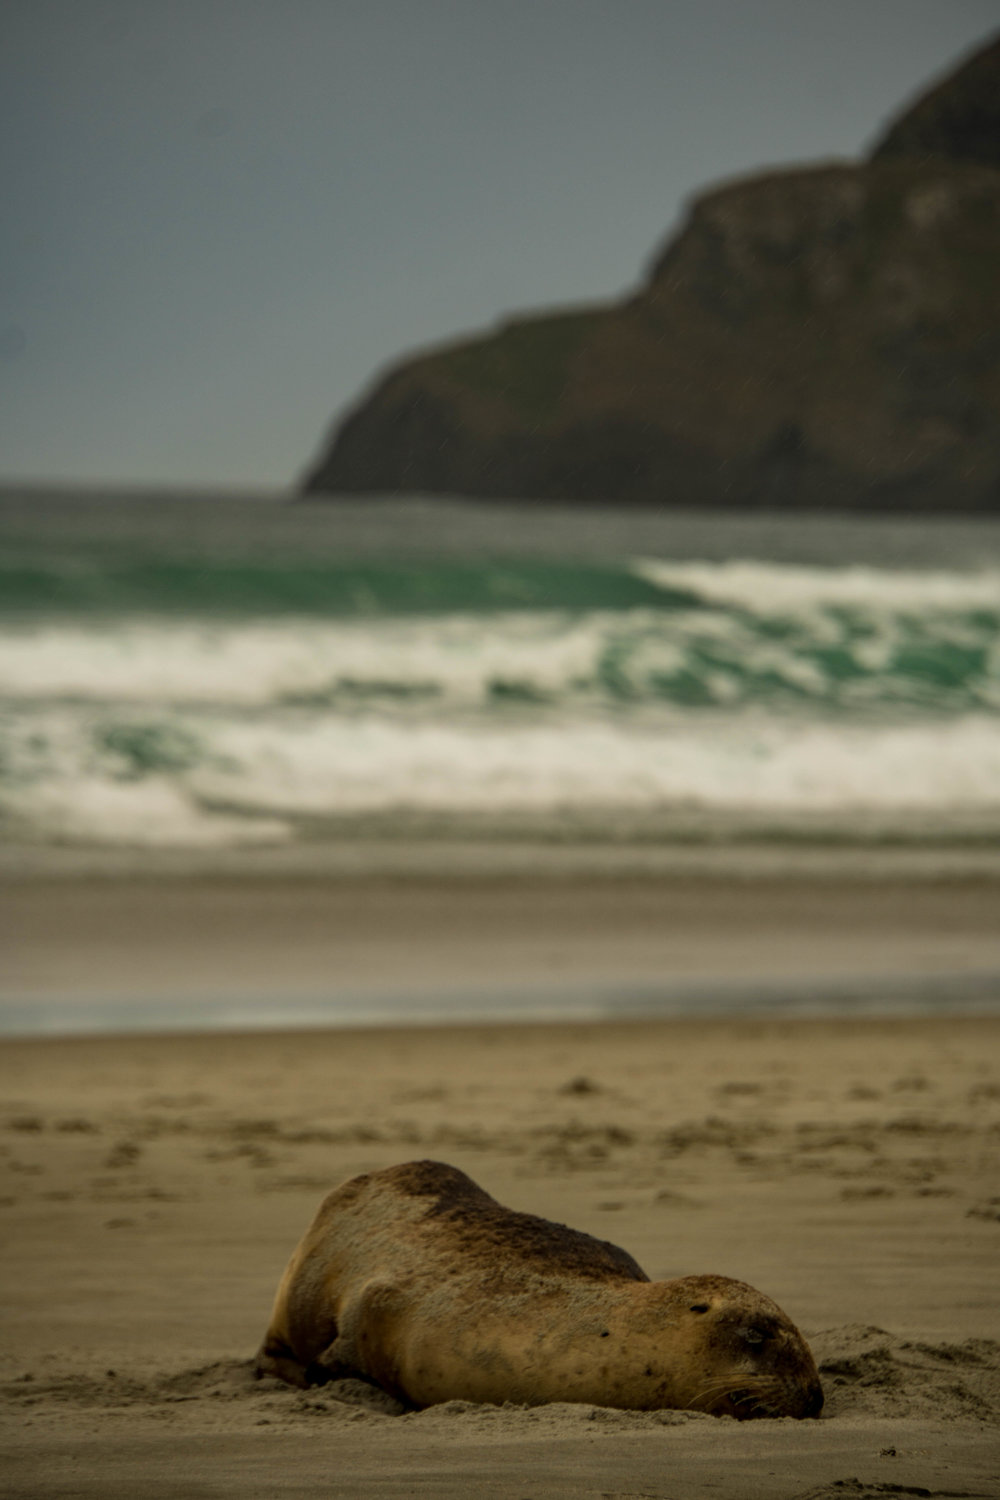 An unexpected encounter with a NZ Sea Lion, among the world's rarest pinnipeds. Otago Peninsula, New Zealand.